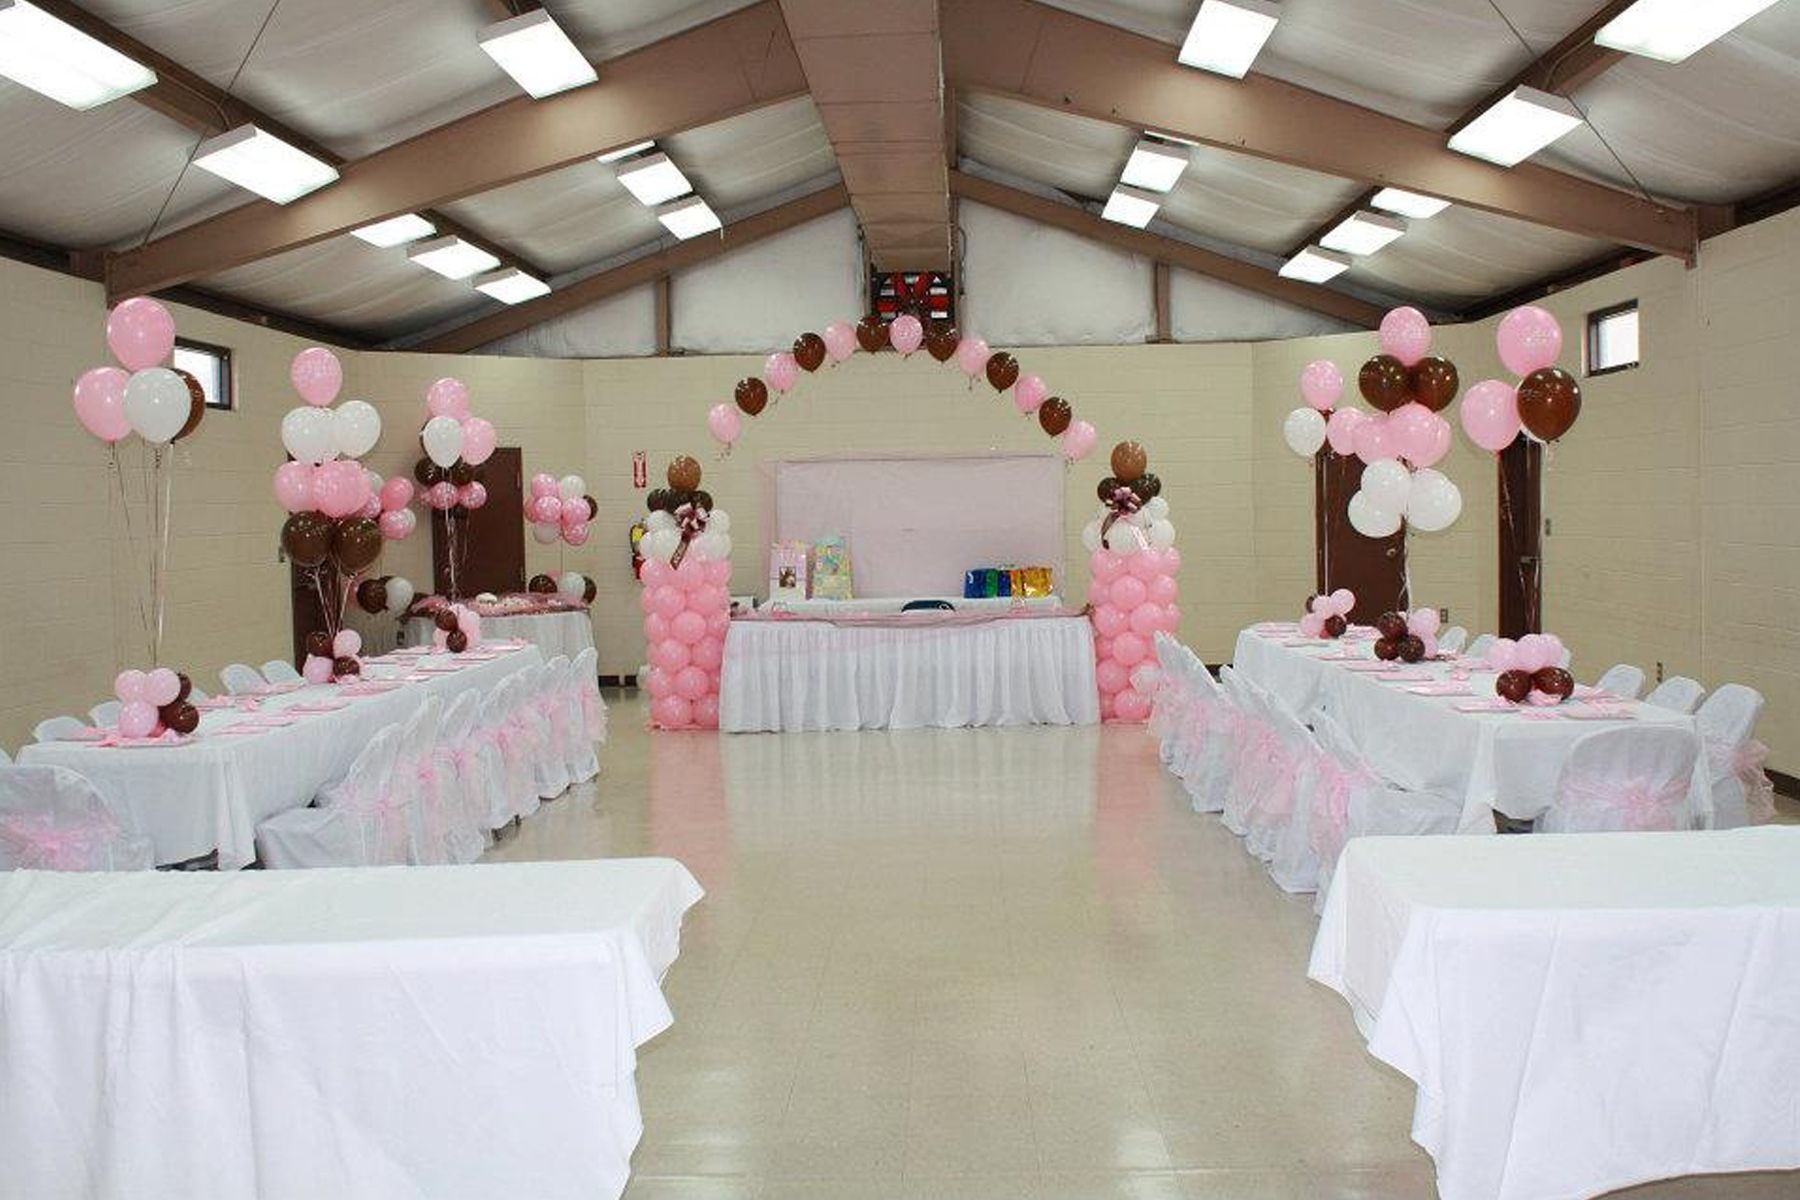 Baby Shower Room Decorating Ideas Baby Shower Decorations Baby Shower Chair Baby Shower Centerpieces Baby Shower Decorations